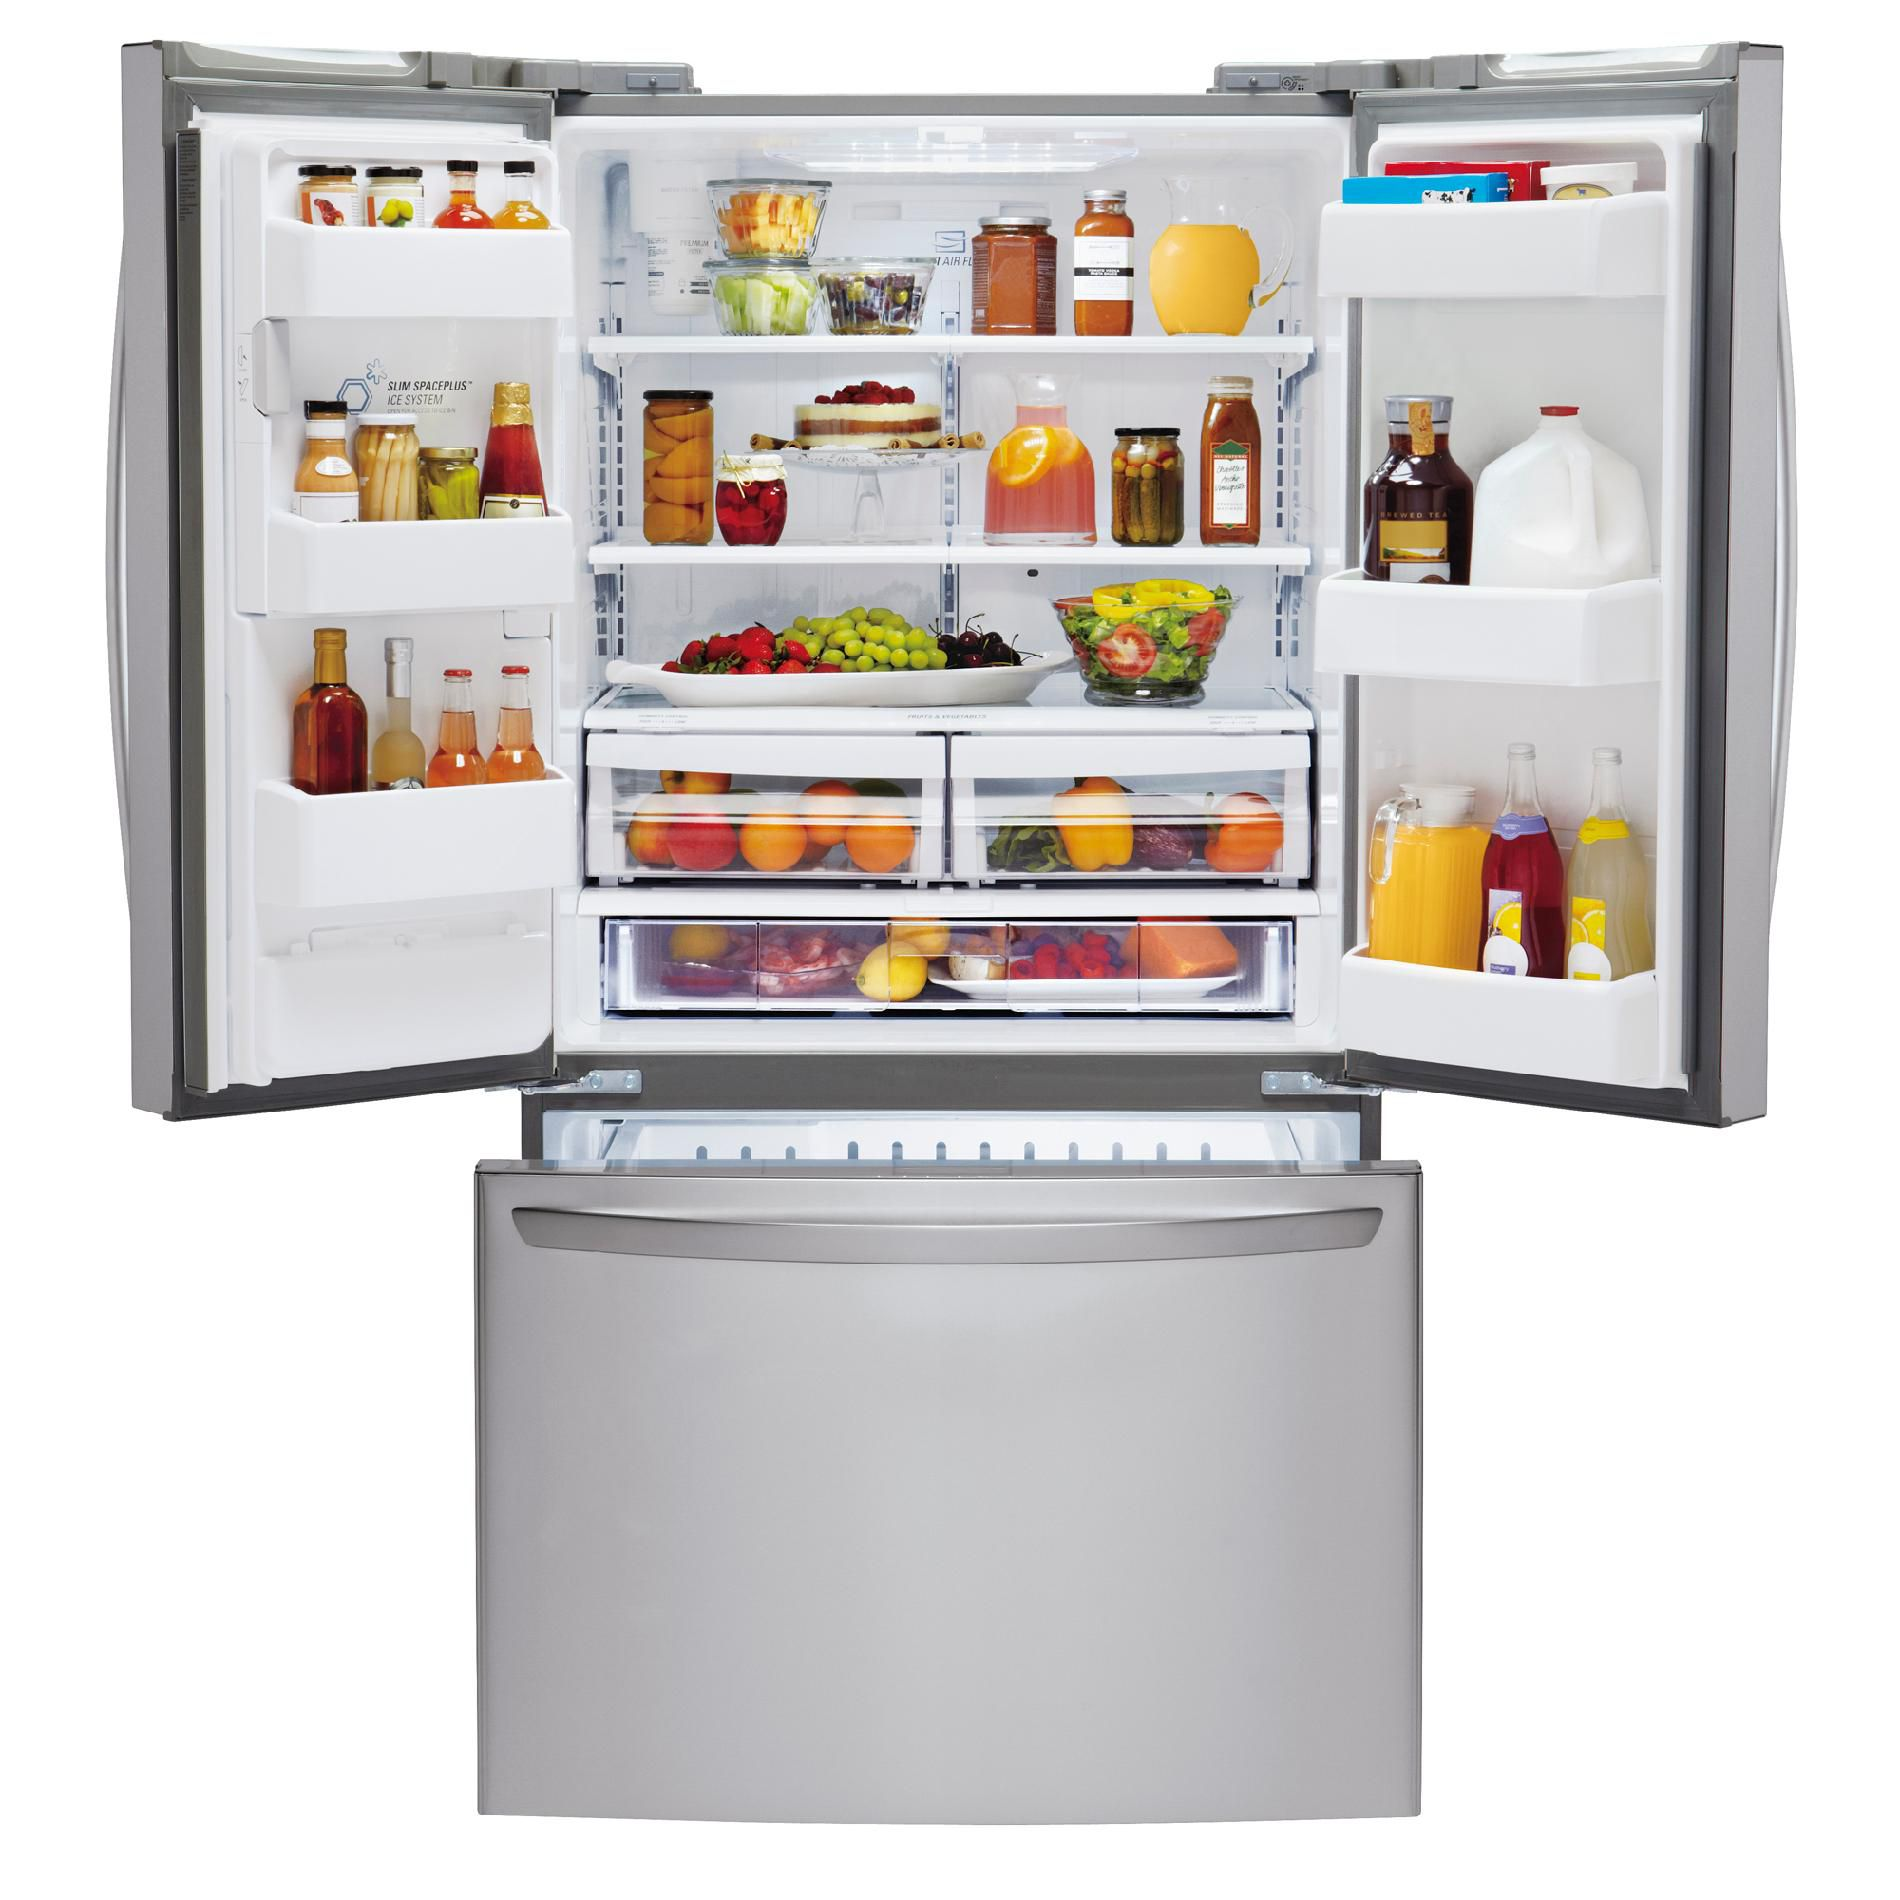 LG 24.7 cu. ft. French-Door Bottom-Freezer Refrigerator - Stainless Steel